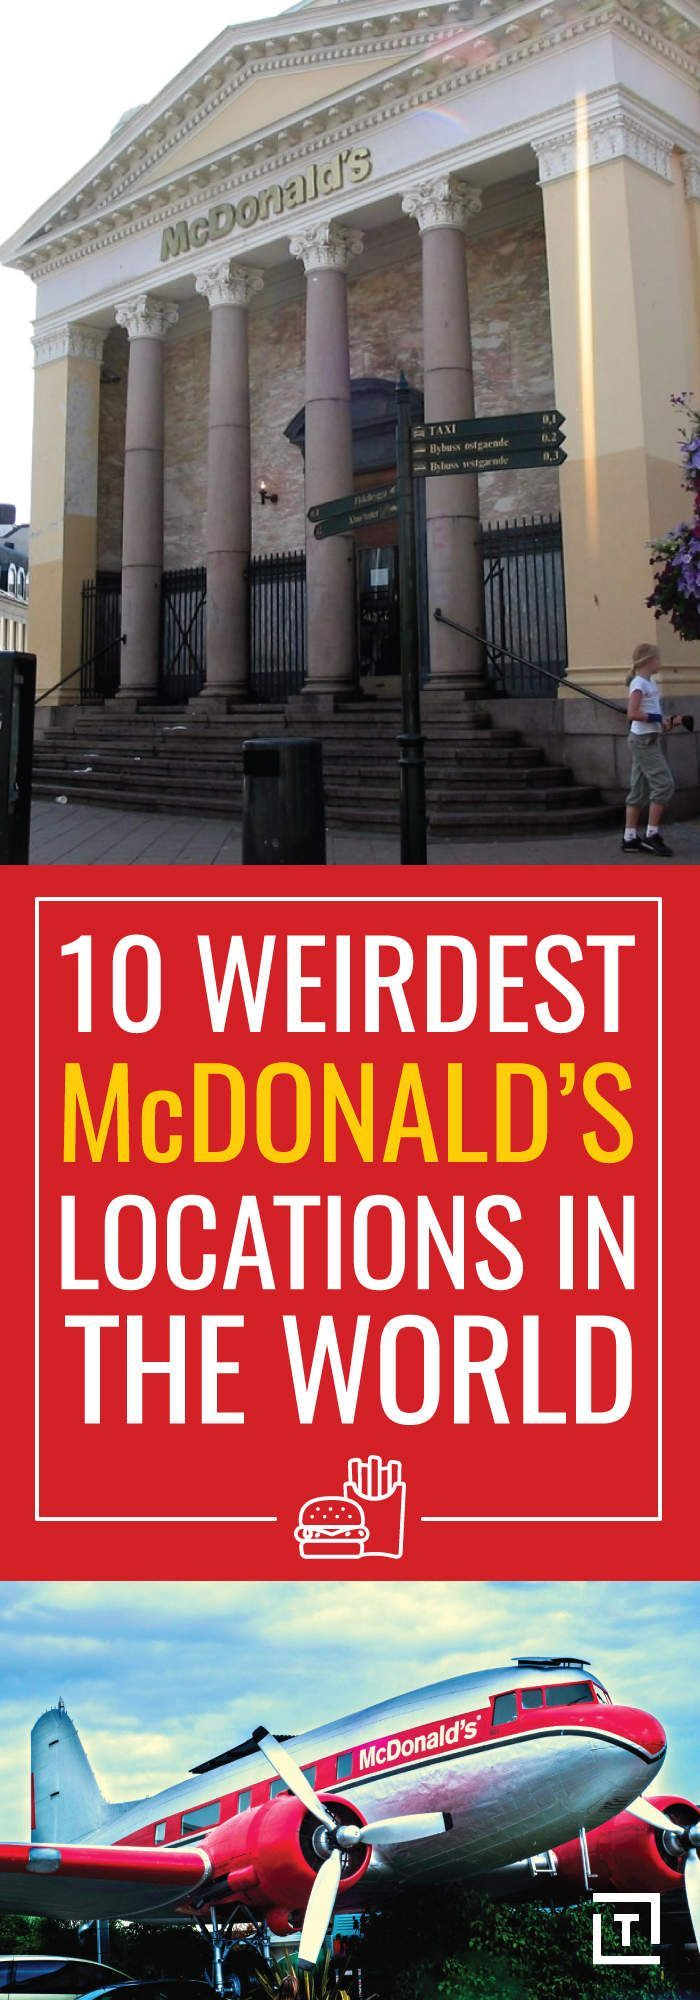 The Weirdest McDonald's Locations in the World